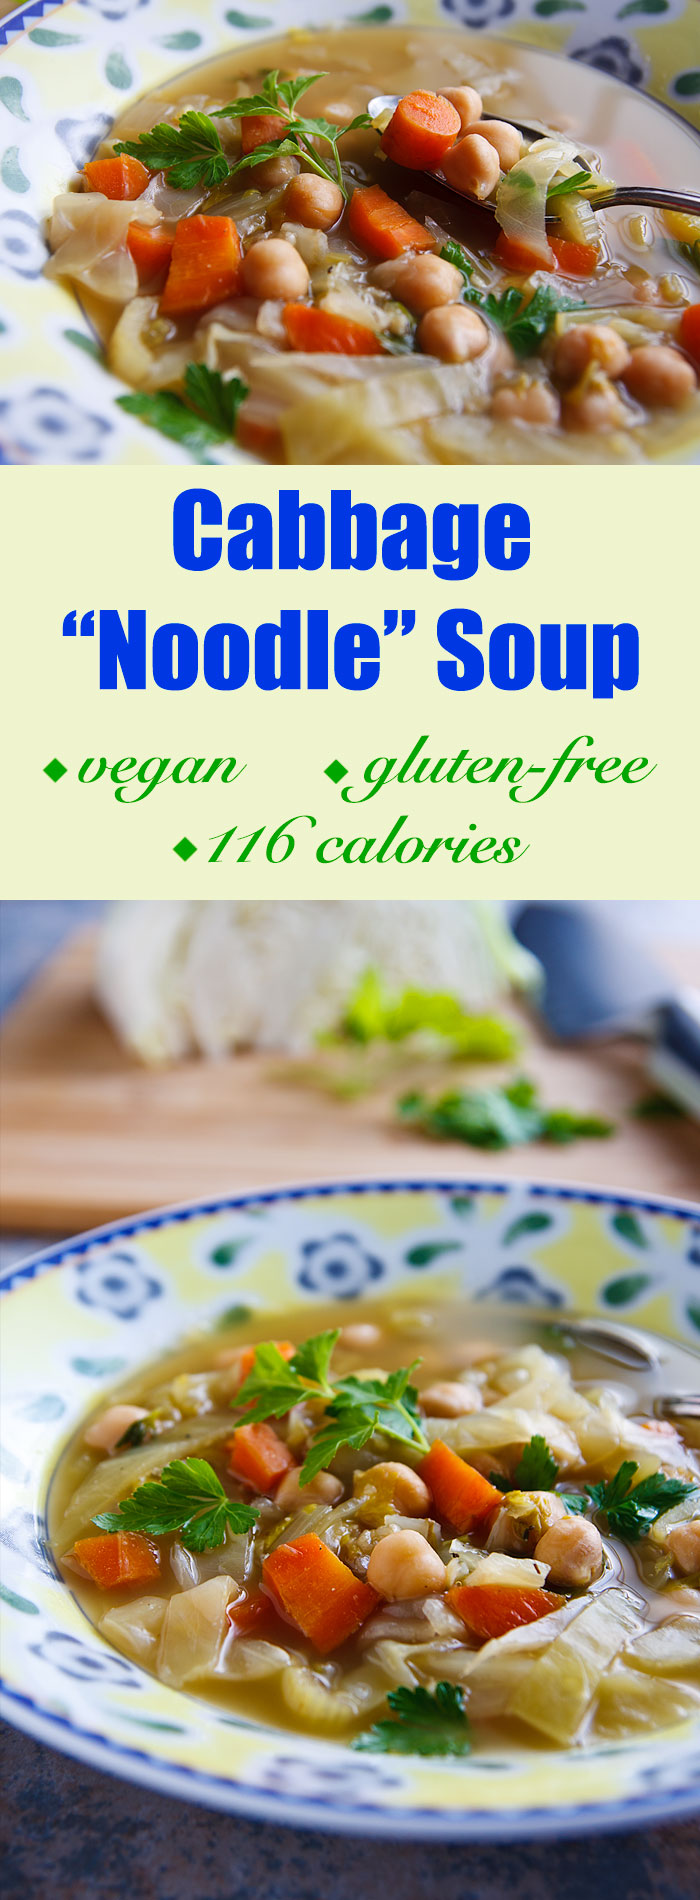 Strips of cabbage stand in for noodles and chickpeas for chicken in this low-fat, gluten-free vegan chicken noodle soup.